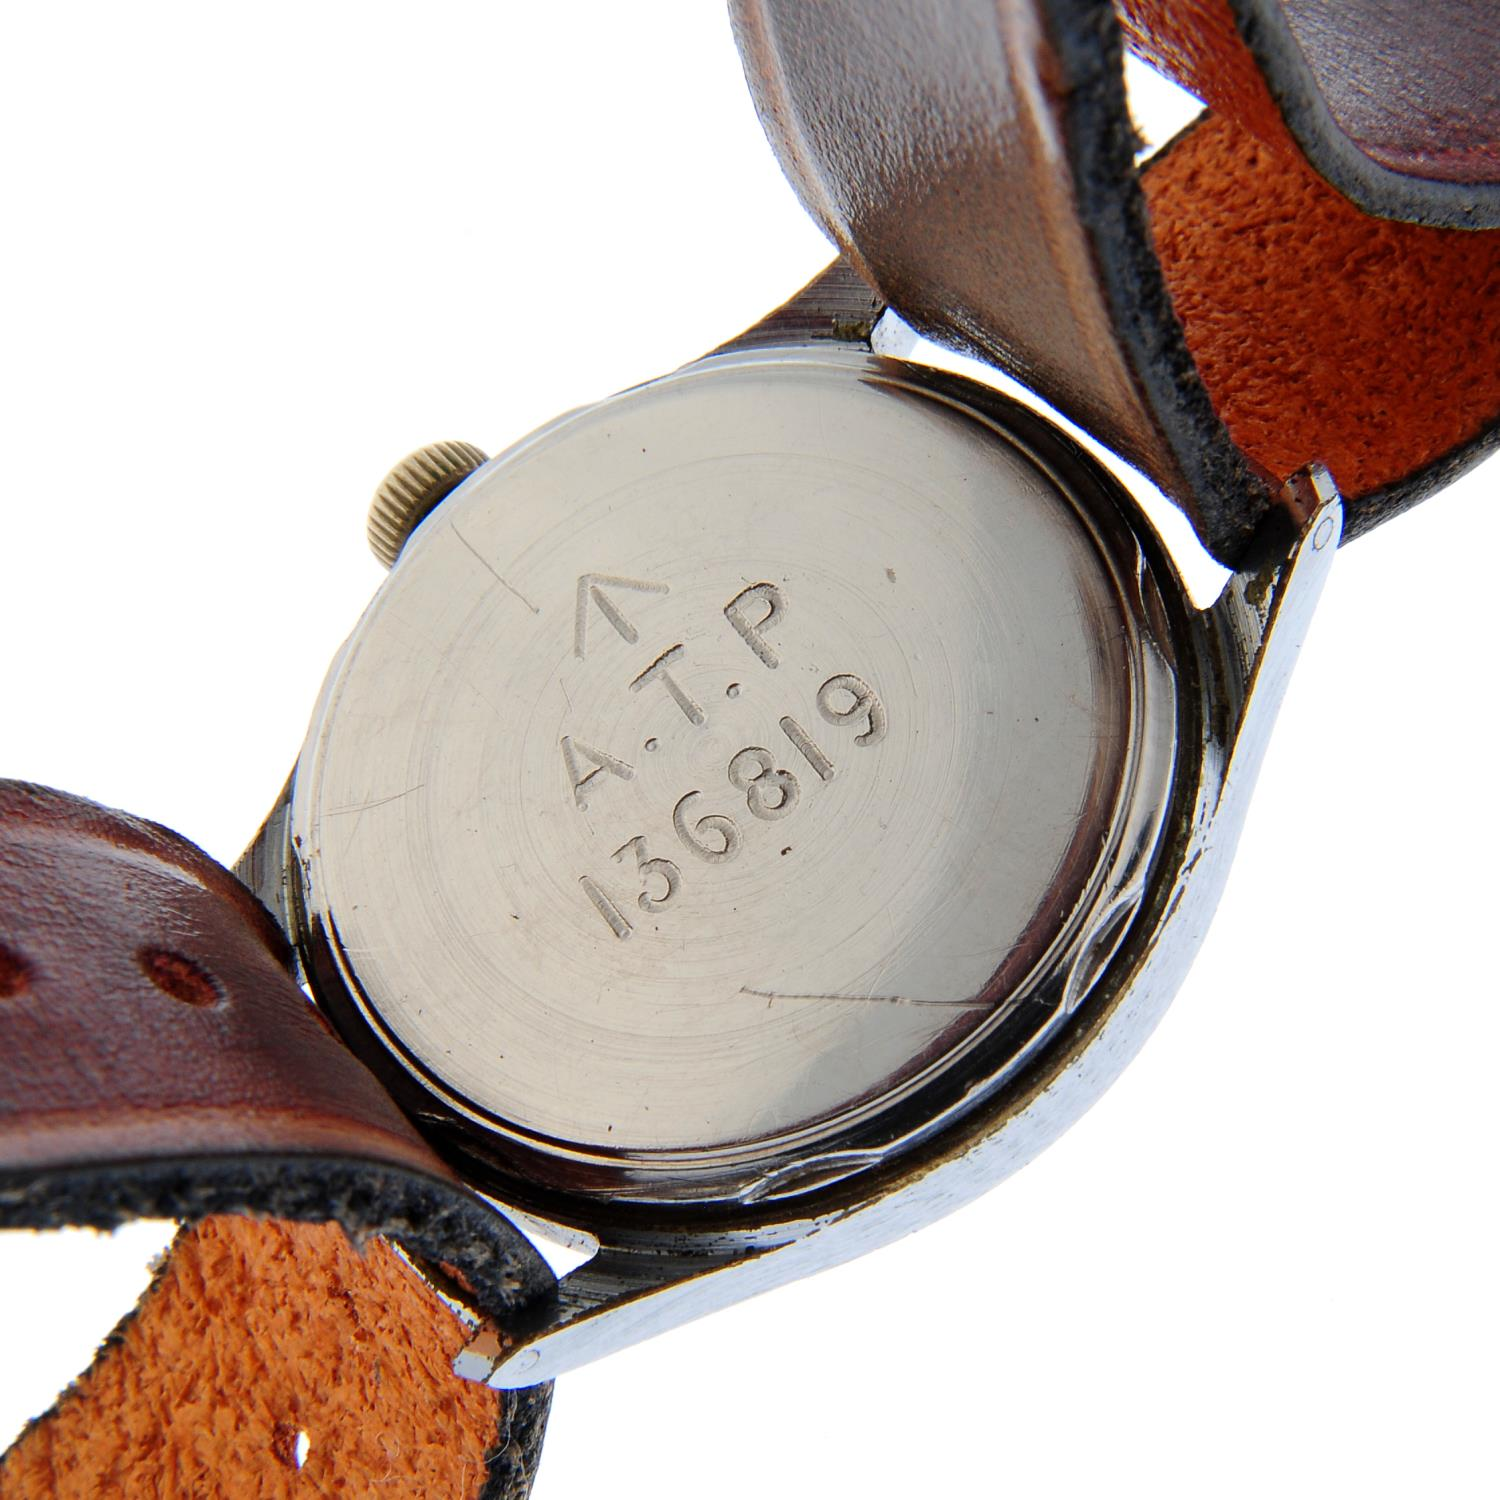 TIMOR - a military issue wrist watch. - Image 4 of 5